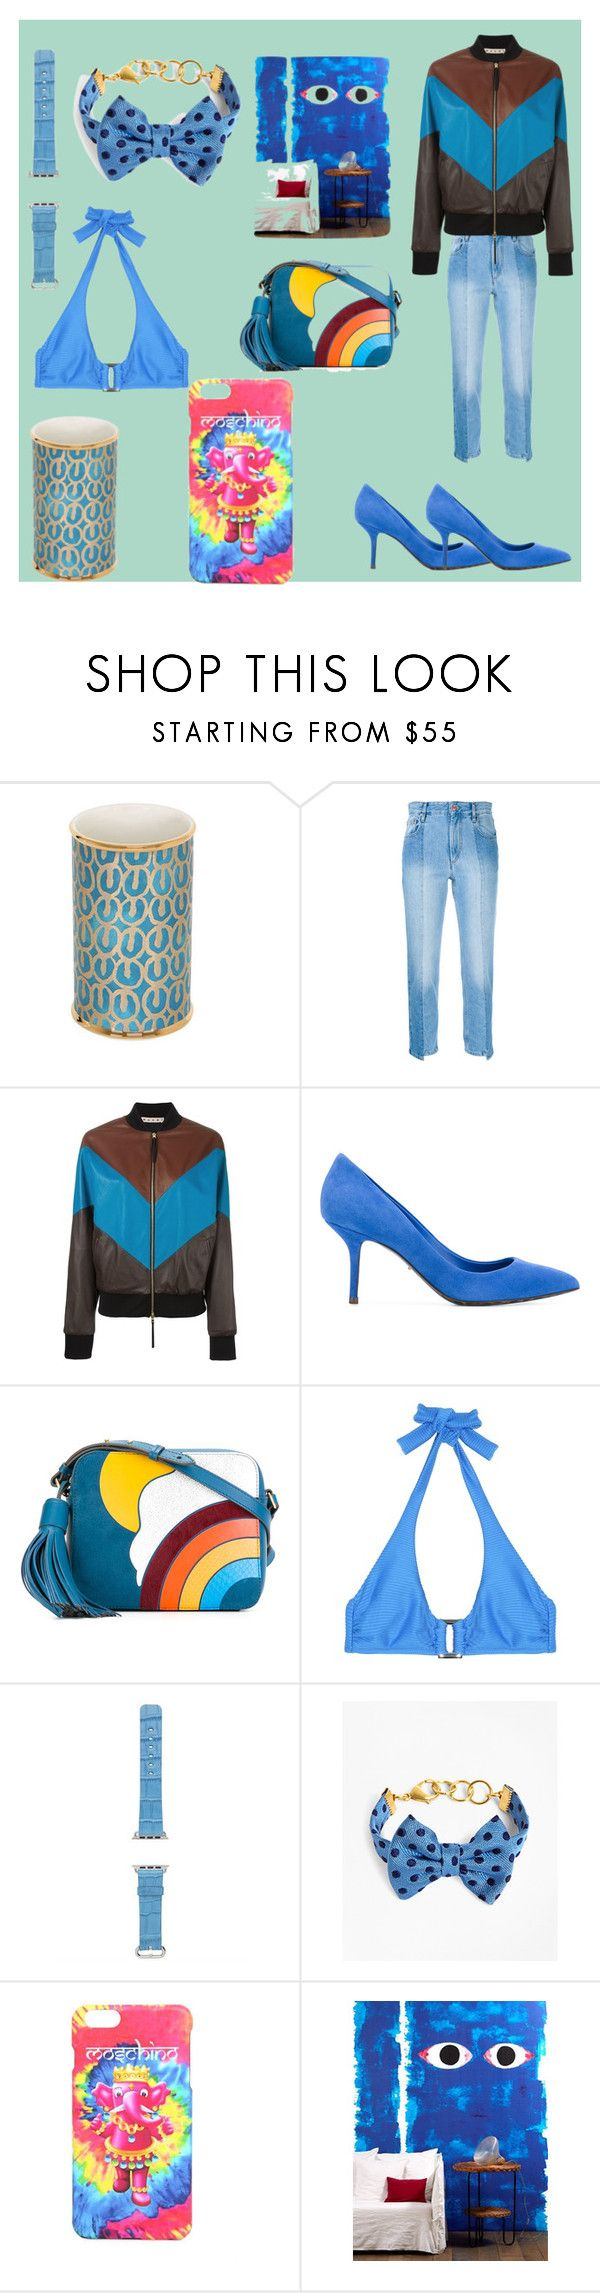 """""""set sale alert"""" by denisee-denisee ❤ liked on Polyvore featuring L'Objet, Étoile Isabel Marant, Marni, Dolce&Gabbana, Anya Hindmarch, Heidi Klein, Hadoro, Brooks Brothers, Moschino and NLXL"""